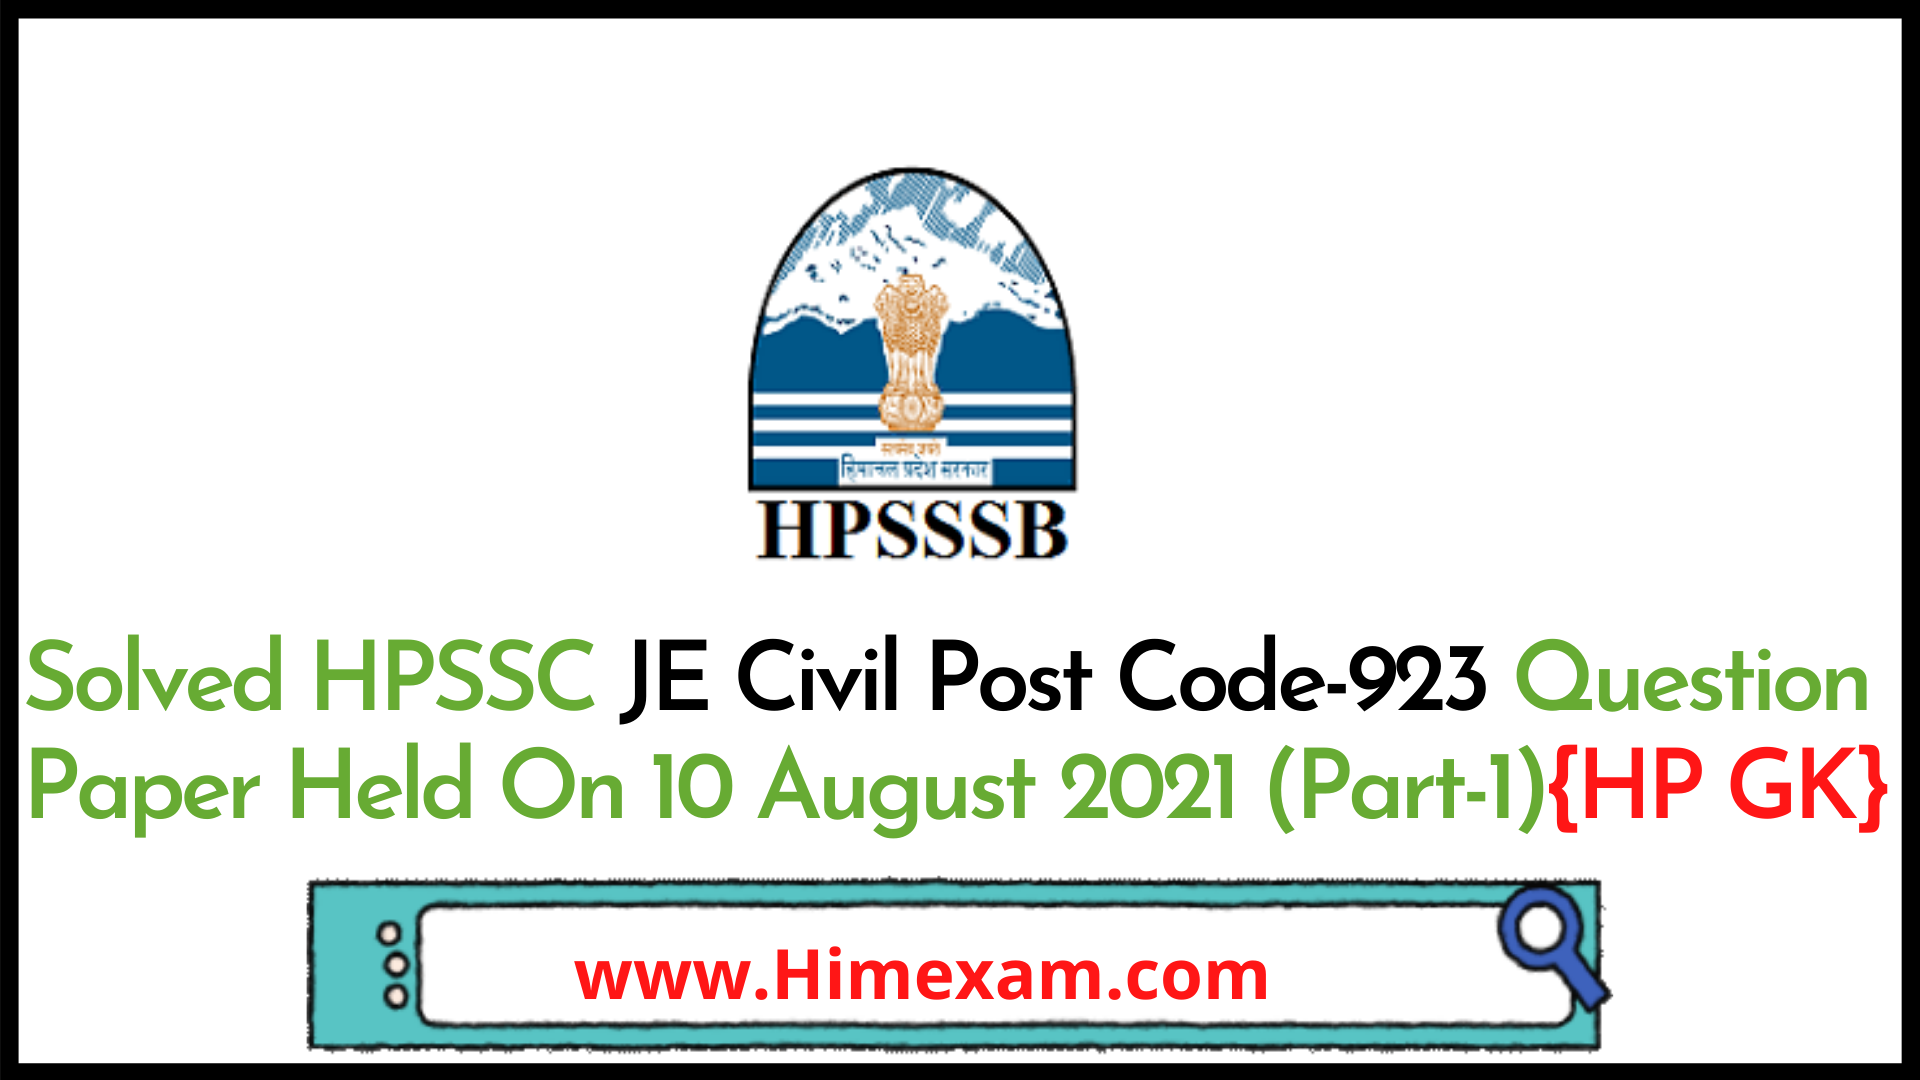 Solved HPSSC JE Civil Post Code-923 Question Paper Held On 10 August 2021 (Part-1)